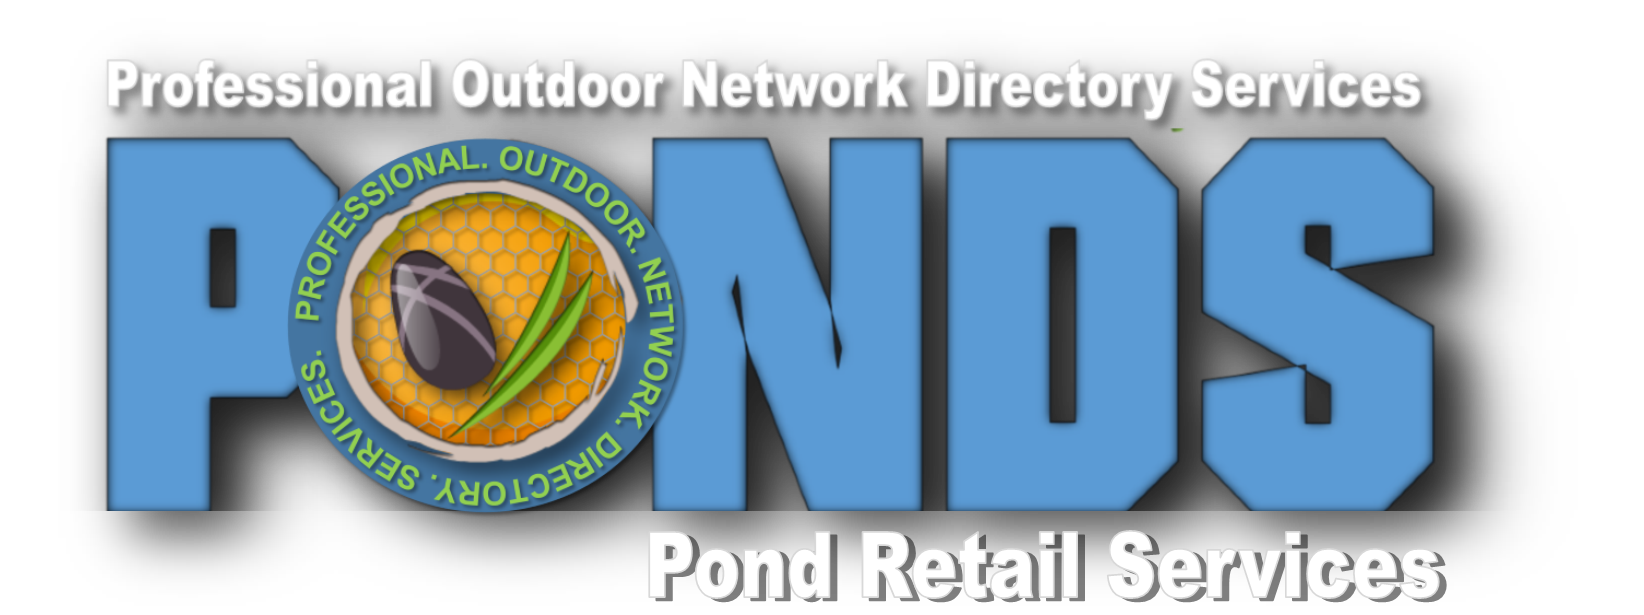 The Pond U0026 Water Garden Retail Supply Network Is Sponsored By P.O.N.D.S.  And Is Made Up Of A Group Of Pond Supply Companies That Recommend, Stock  And Sell ...